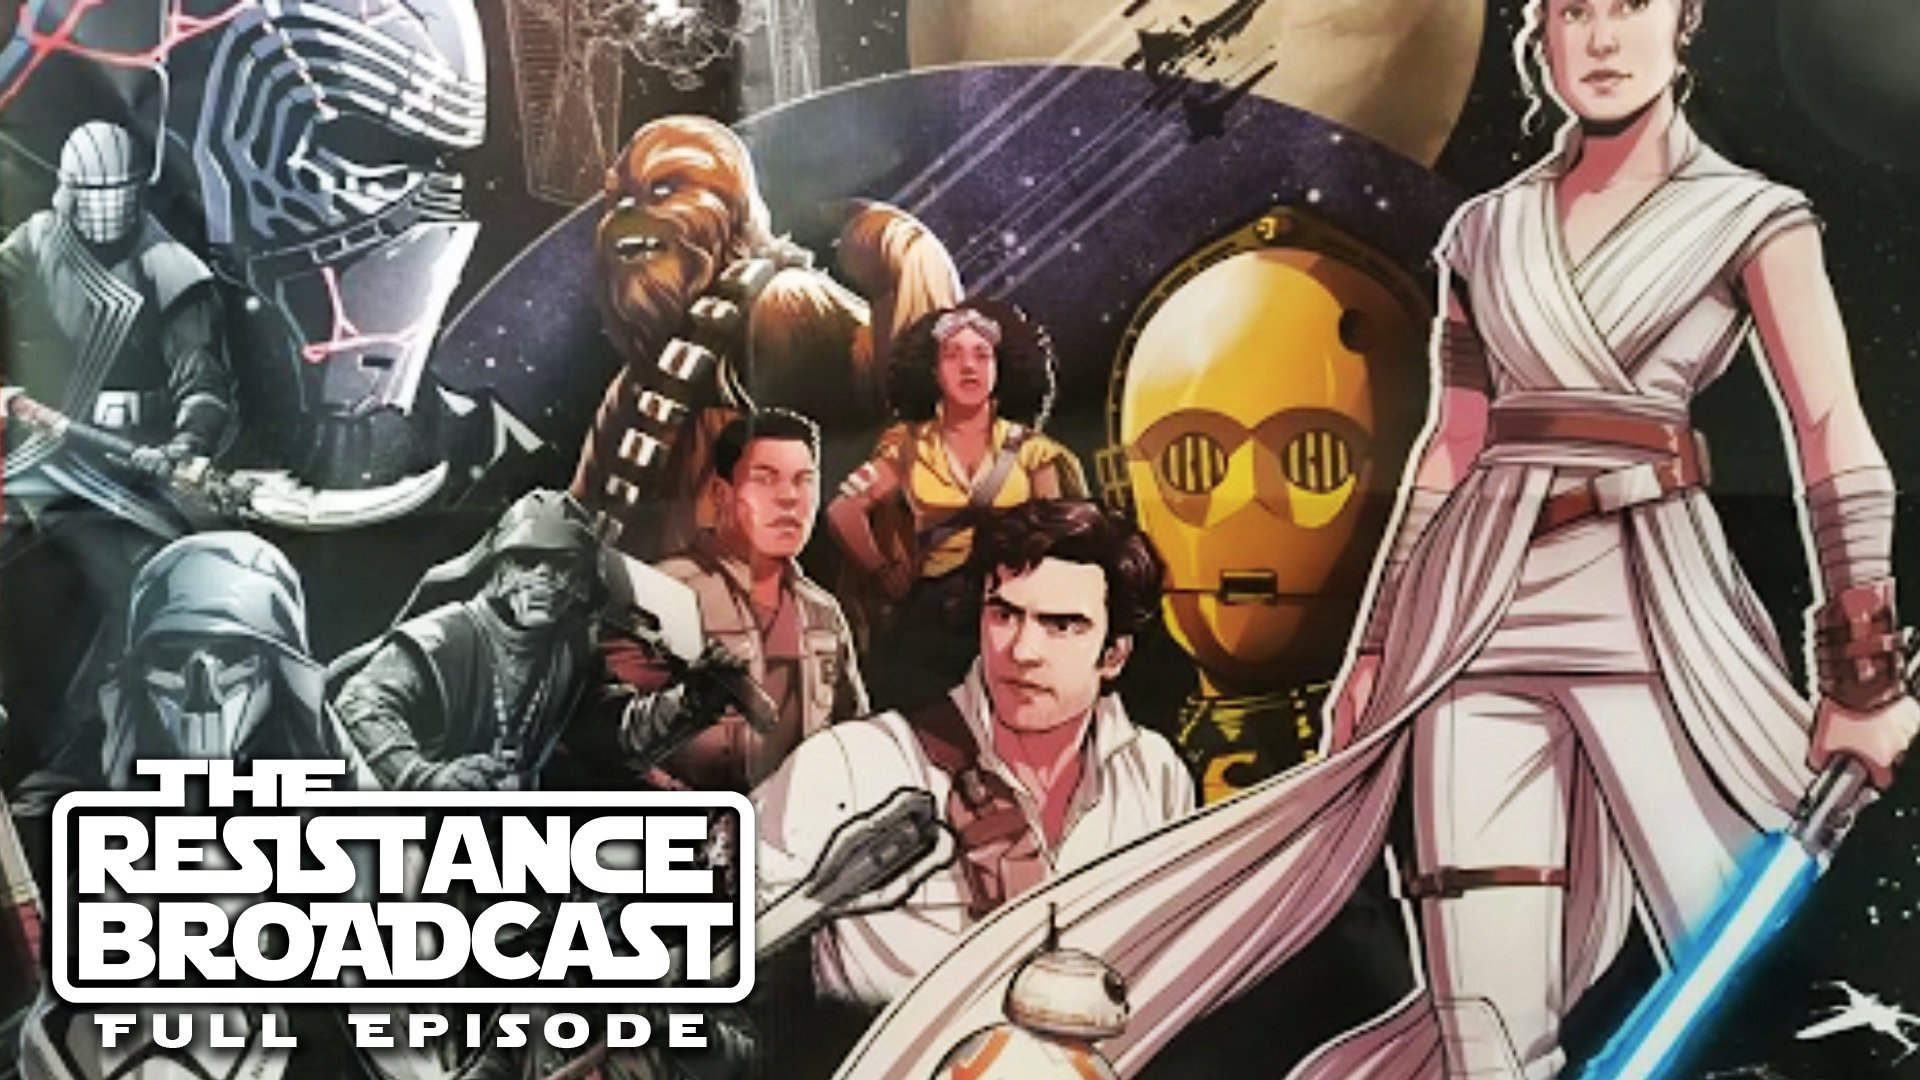 The Resistance Broadcast Discussing The Latest Star Wars Retail Leaks From The Rise Of Skywalker Star Wars News Net